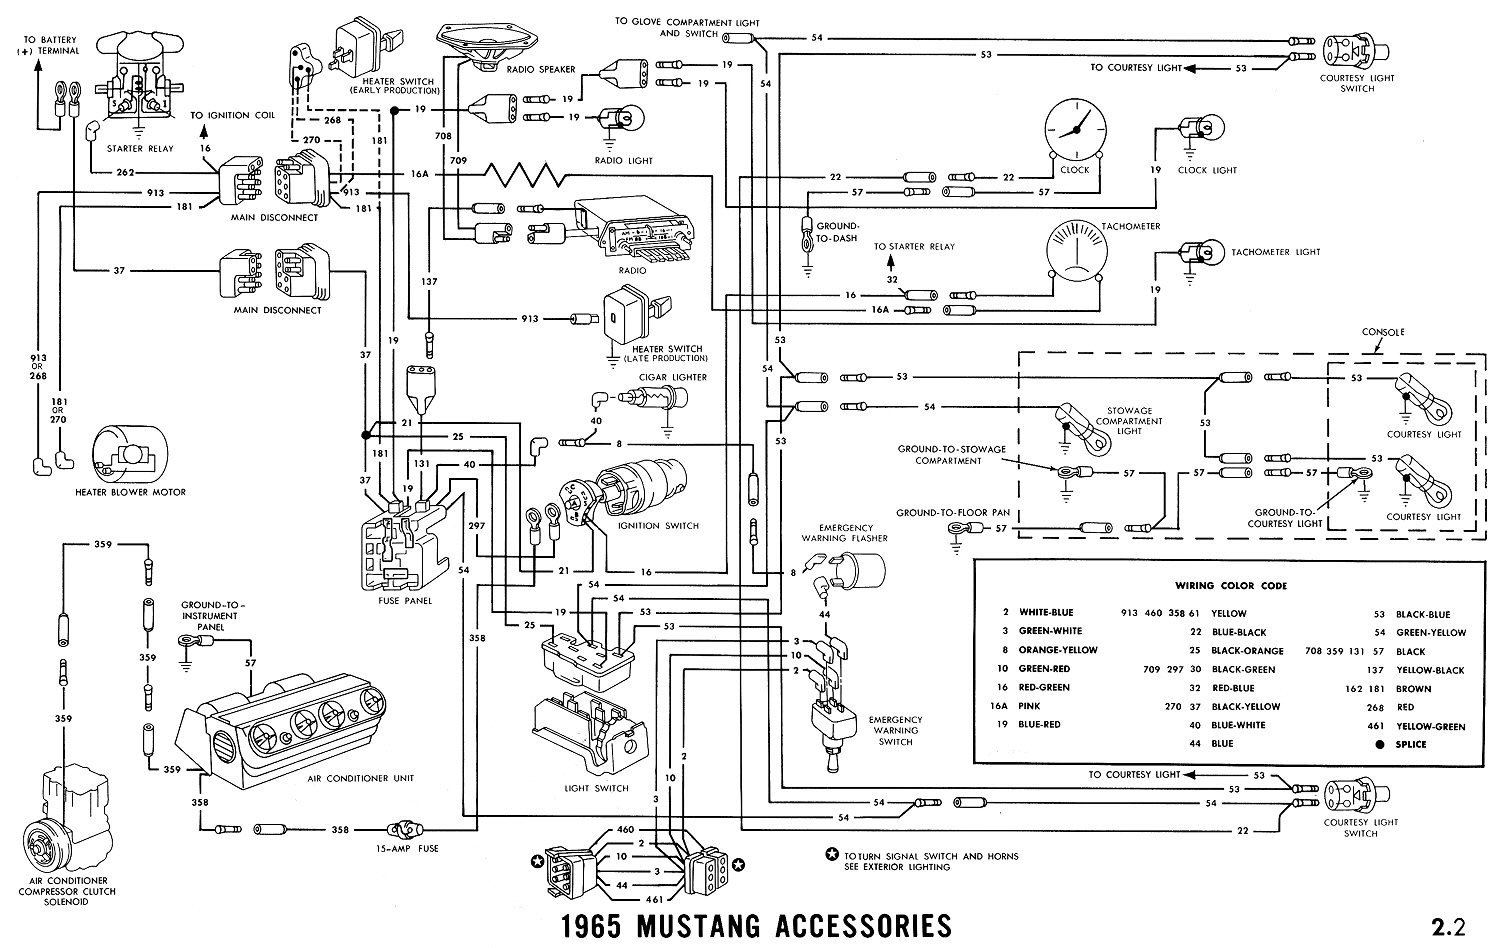 1965i 1965 mustang wiring diagrams average joe restoration engine wiring diagram 1967 mustang v8 at mifinder.co